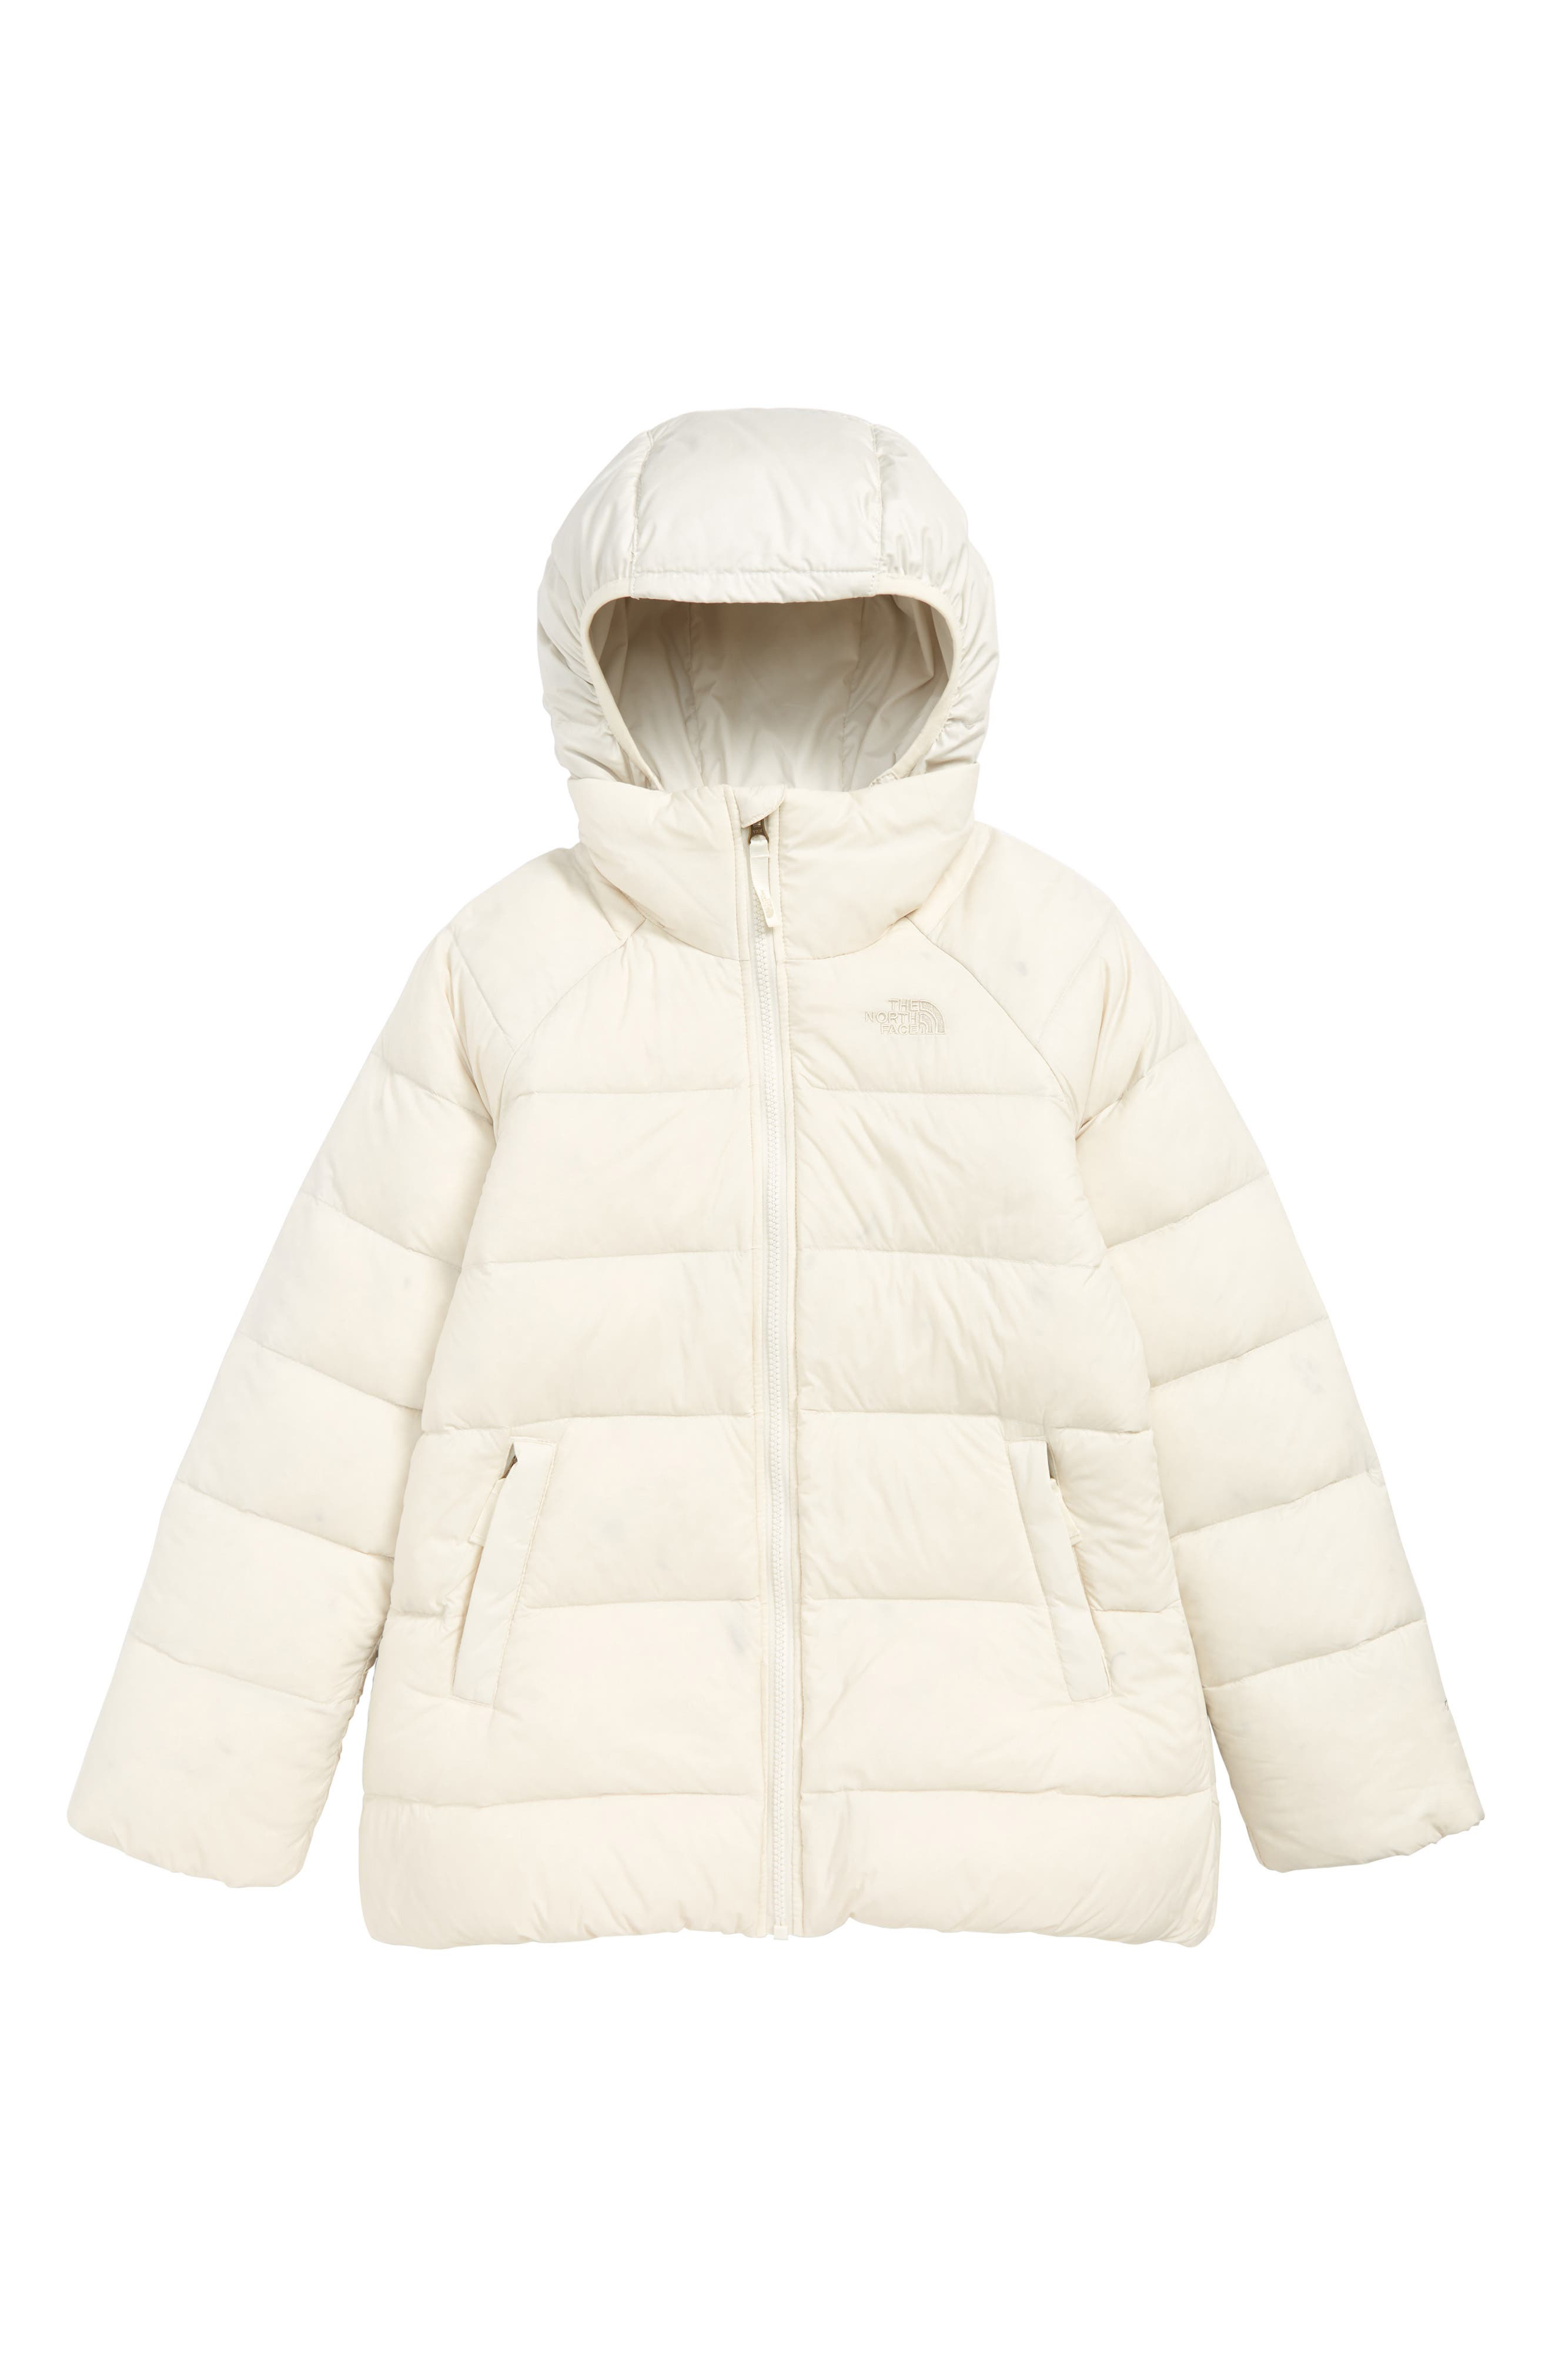 THE NORTH FACE, Double Down TriClimate<sup>®</sup> 3-in-1 Jacket, Main thumbnail 1, color, VINTAGE WHITE